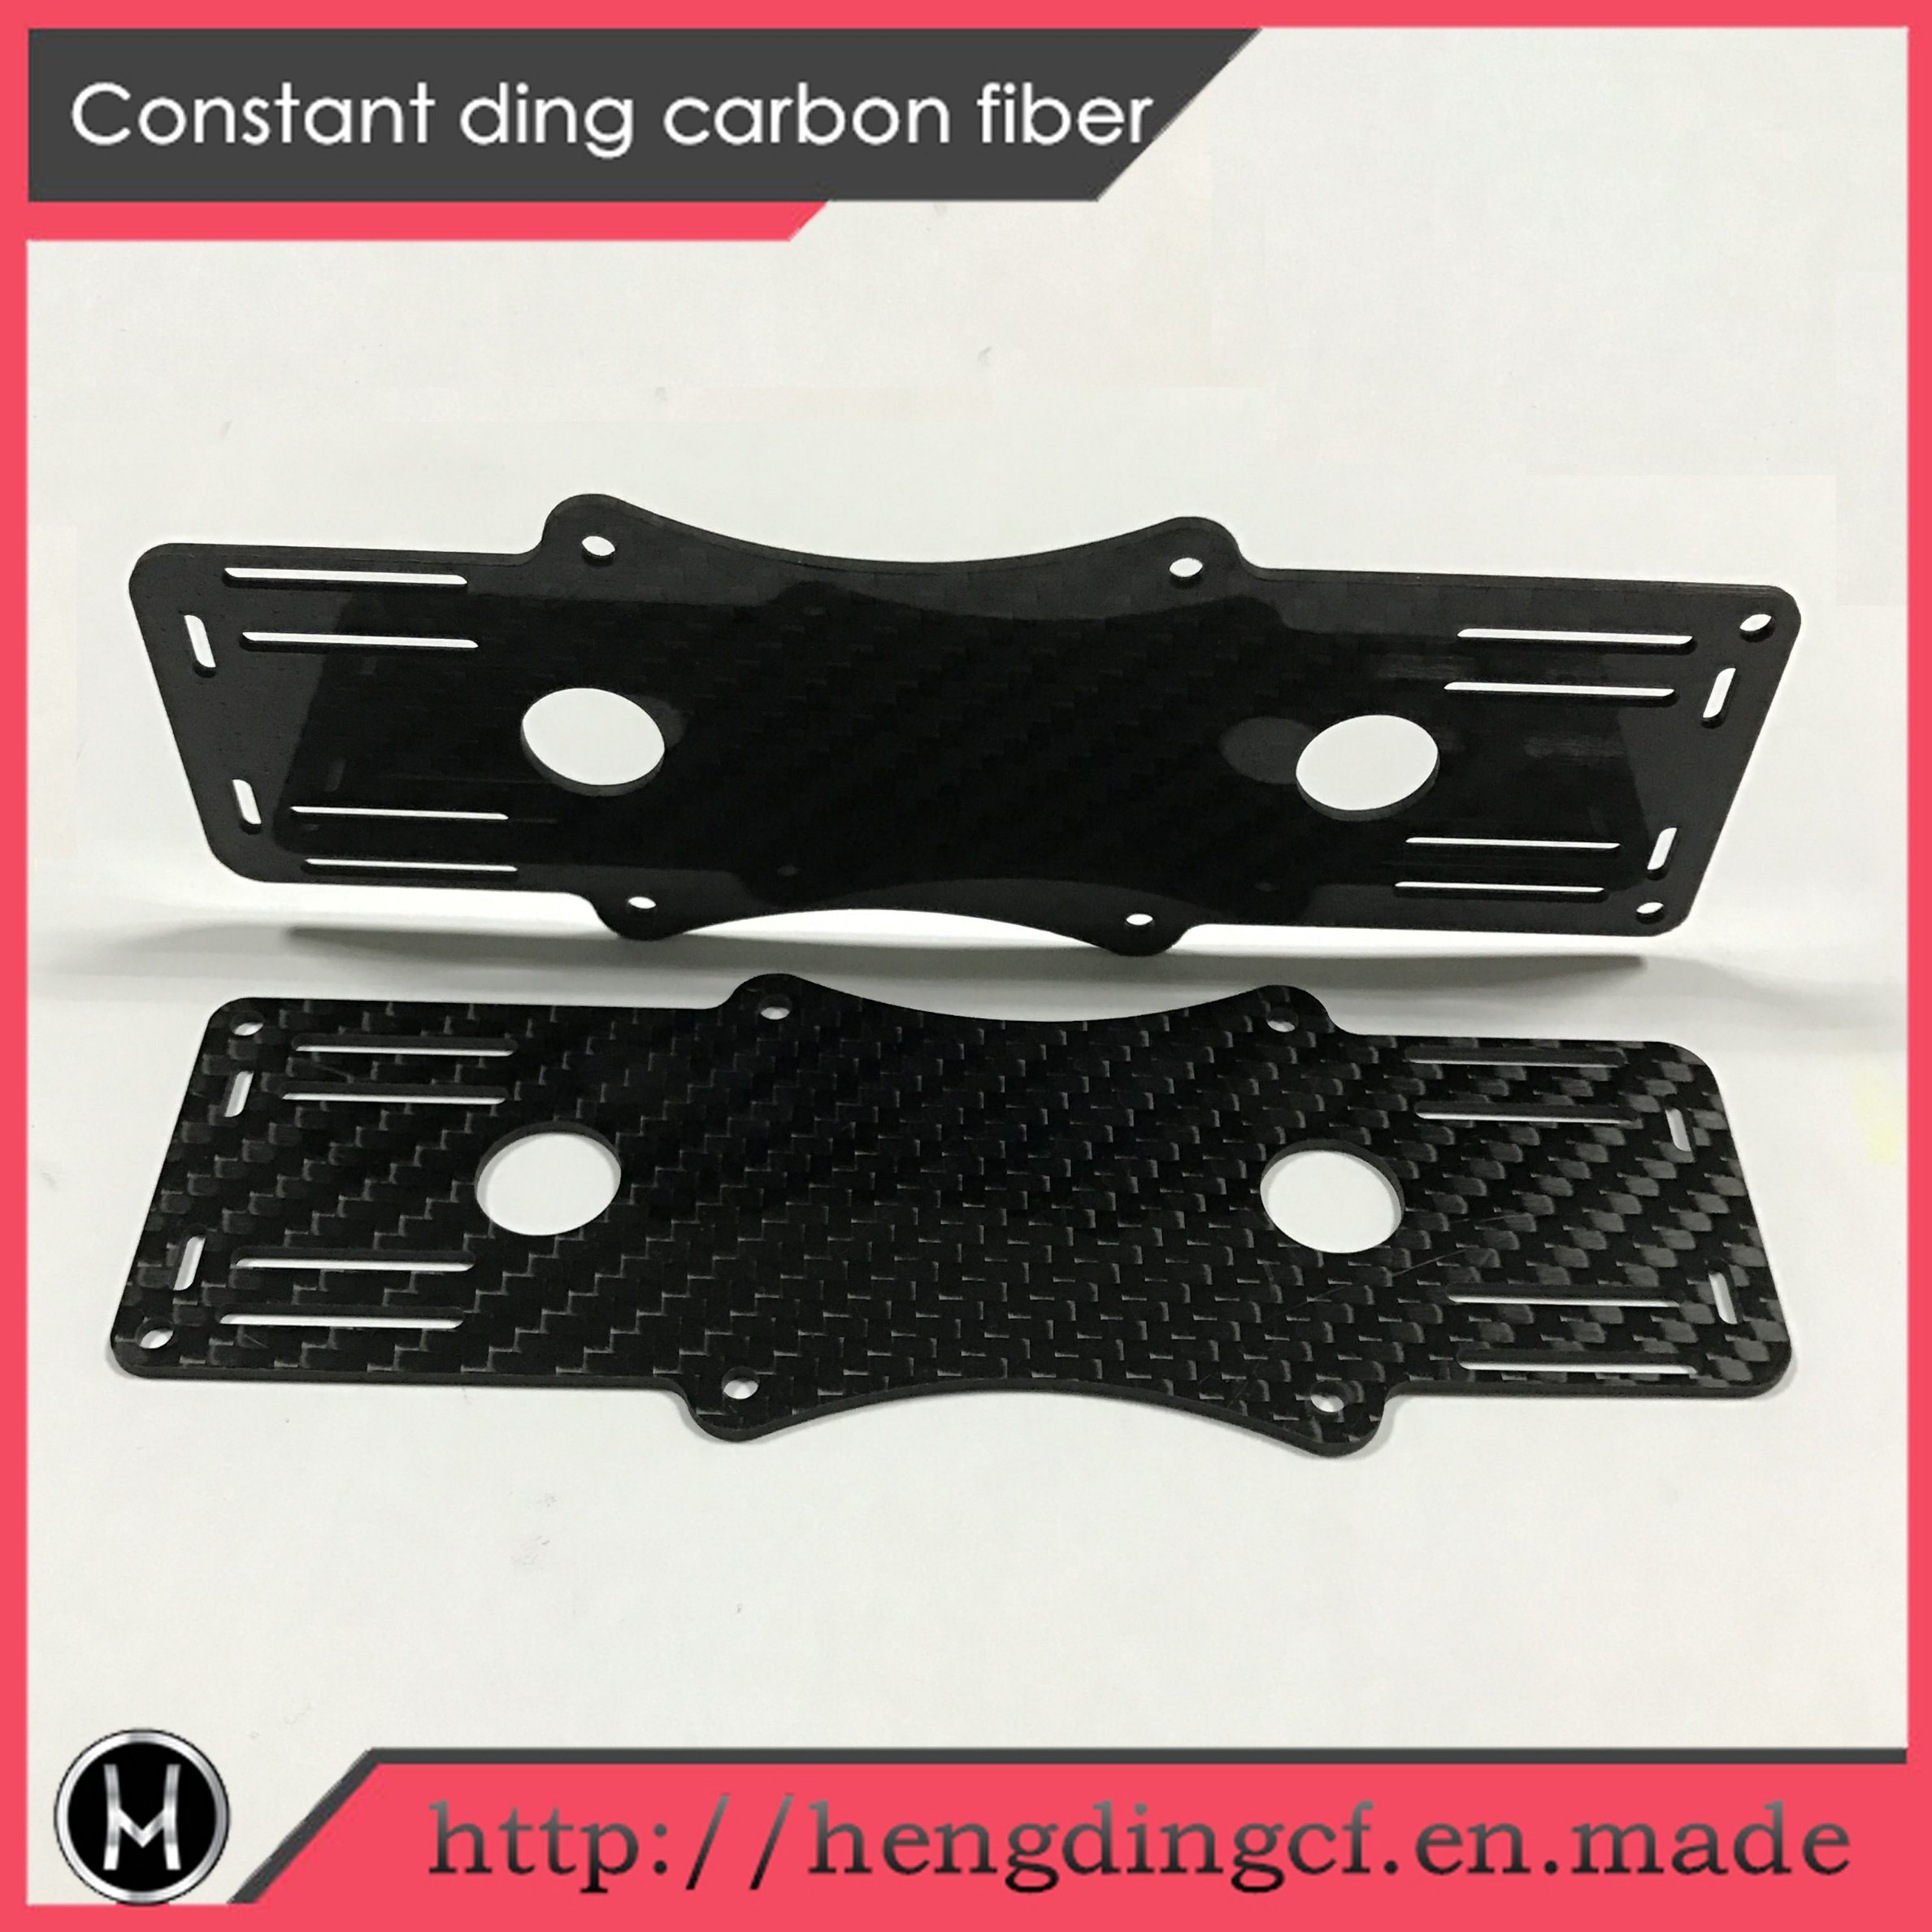 Carbon Fiber Plate for Uav Parts, RC Chassis CNC Cut